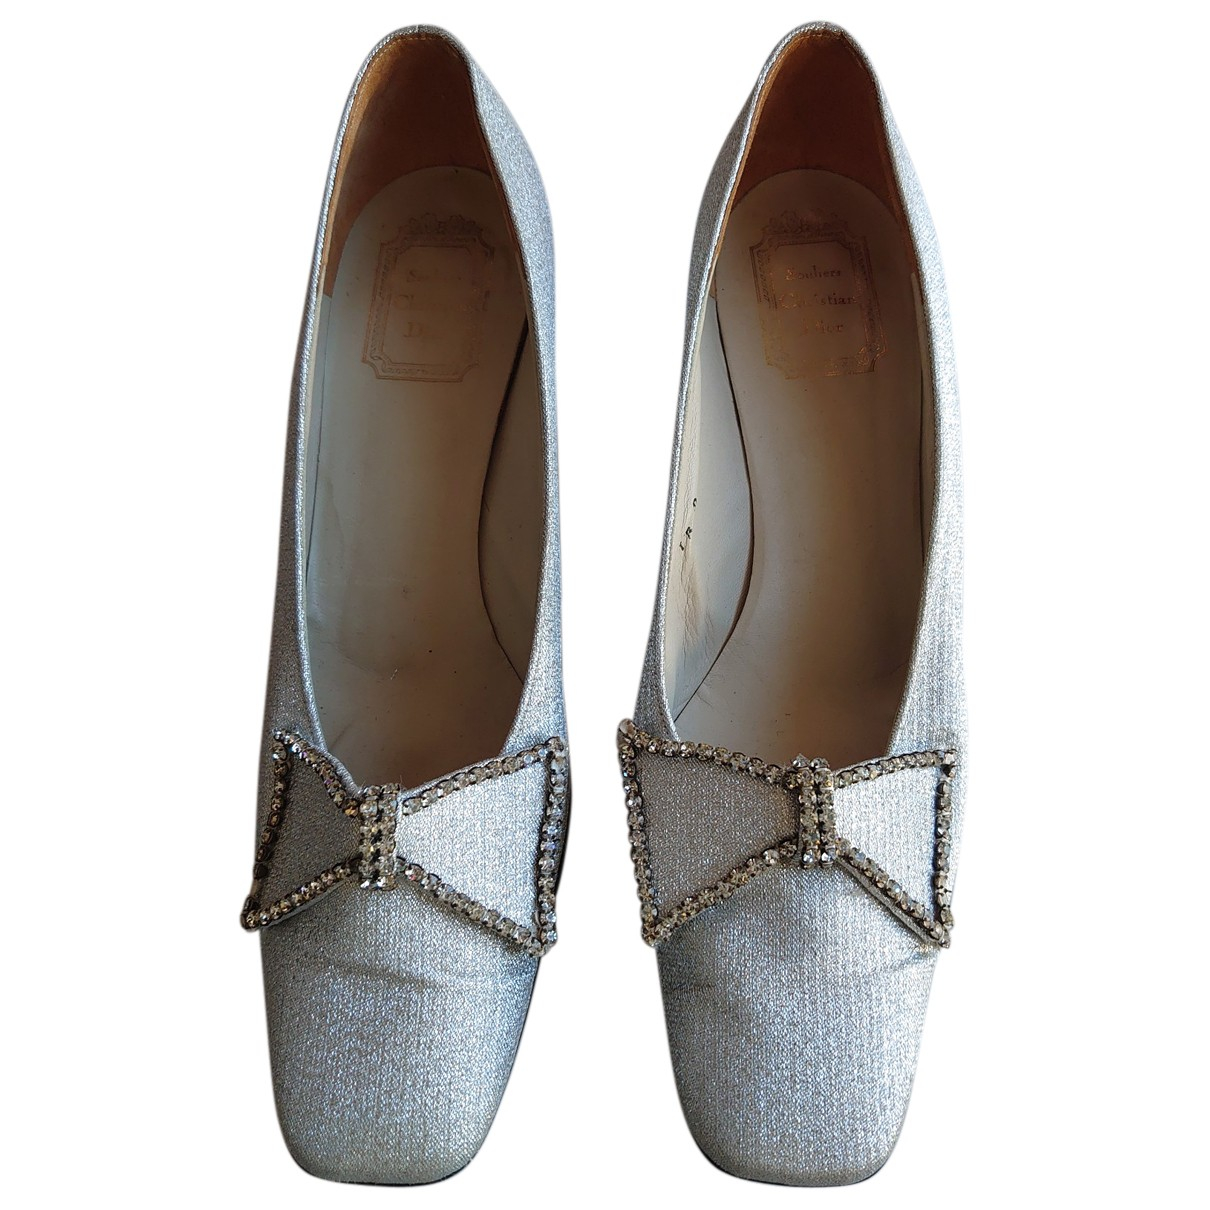 Dior N Silver Leather Heels for Women 39 EU